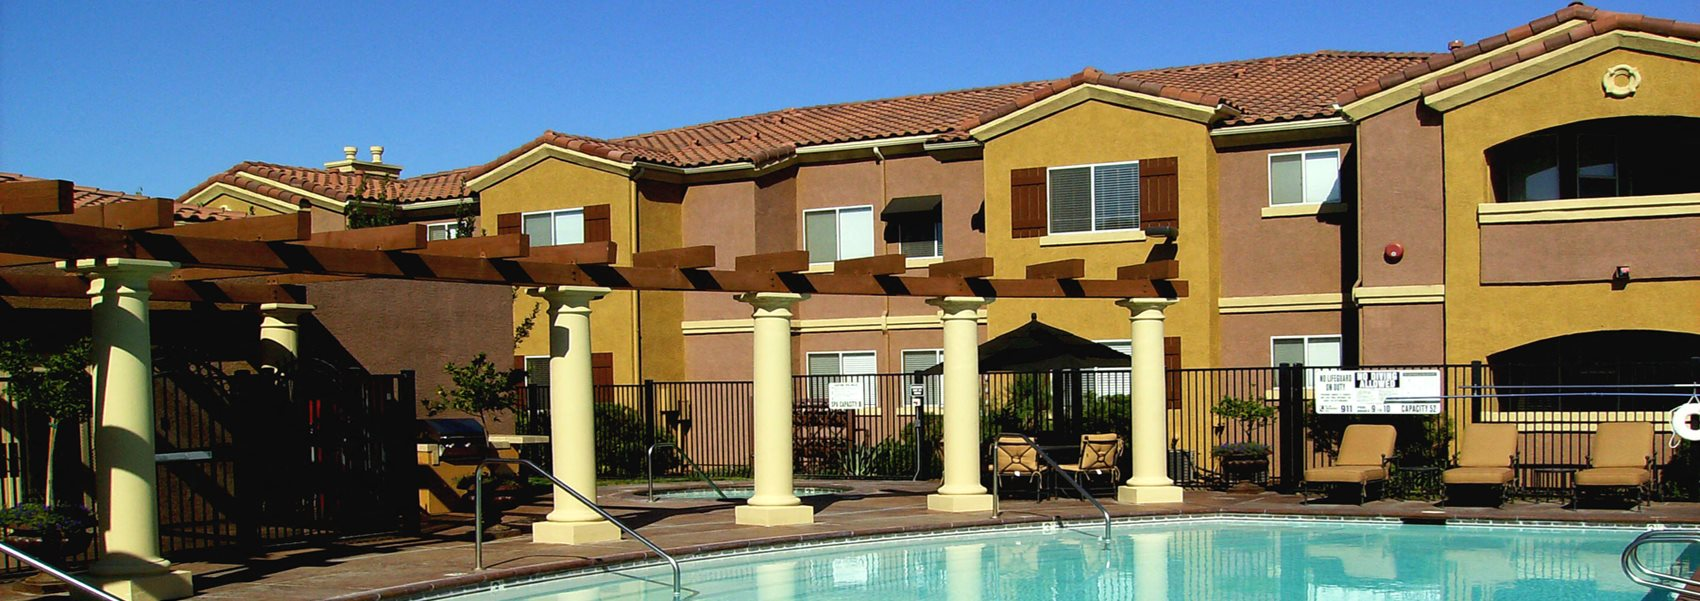 Pool with apt buildings in back  Elk Grove Apartments l Castellino at Lauga West Apartments